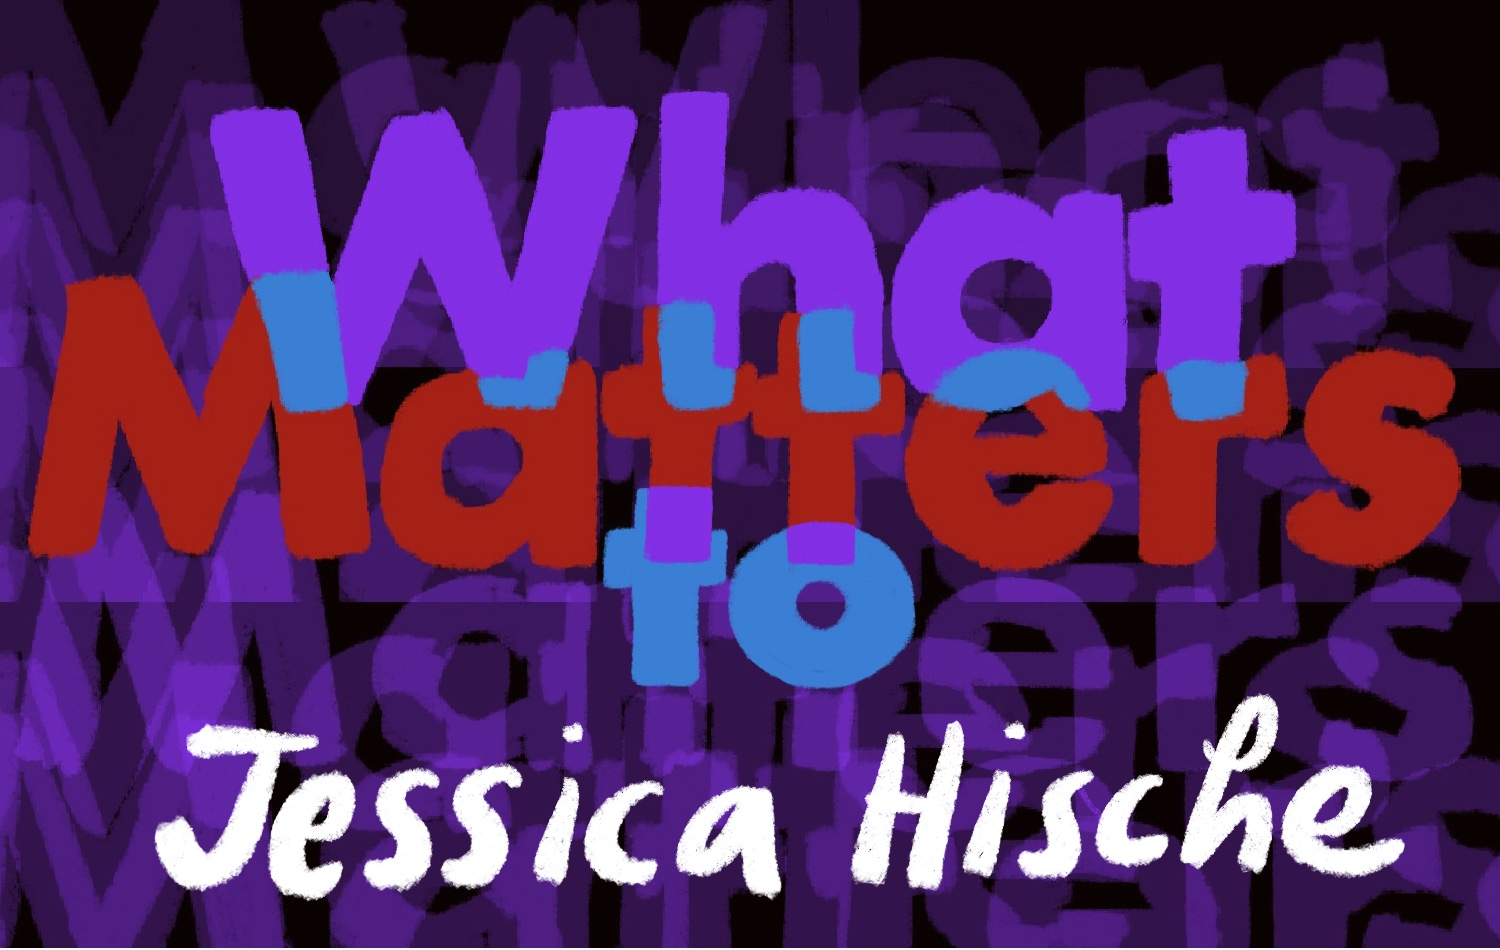 Thumbnail for What Matters: The Resilient Jessica Hische